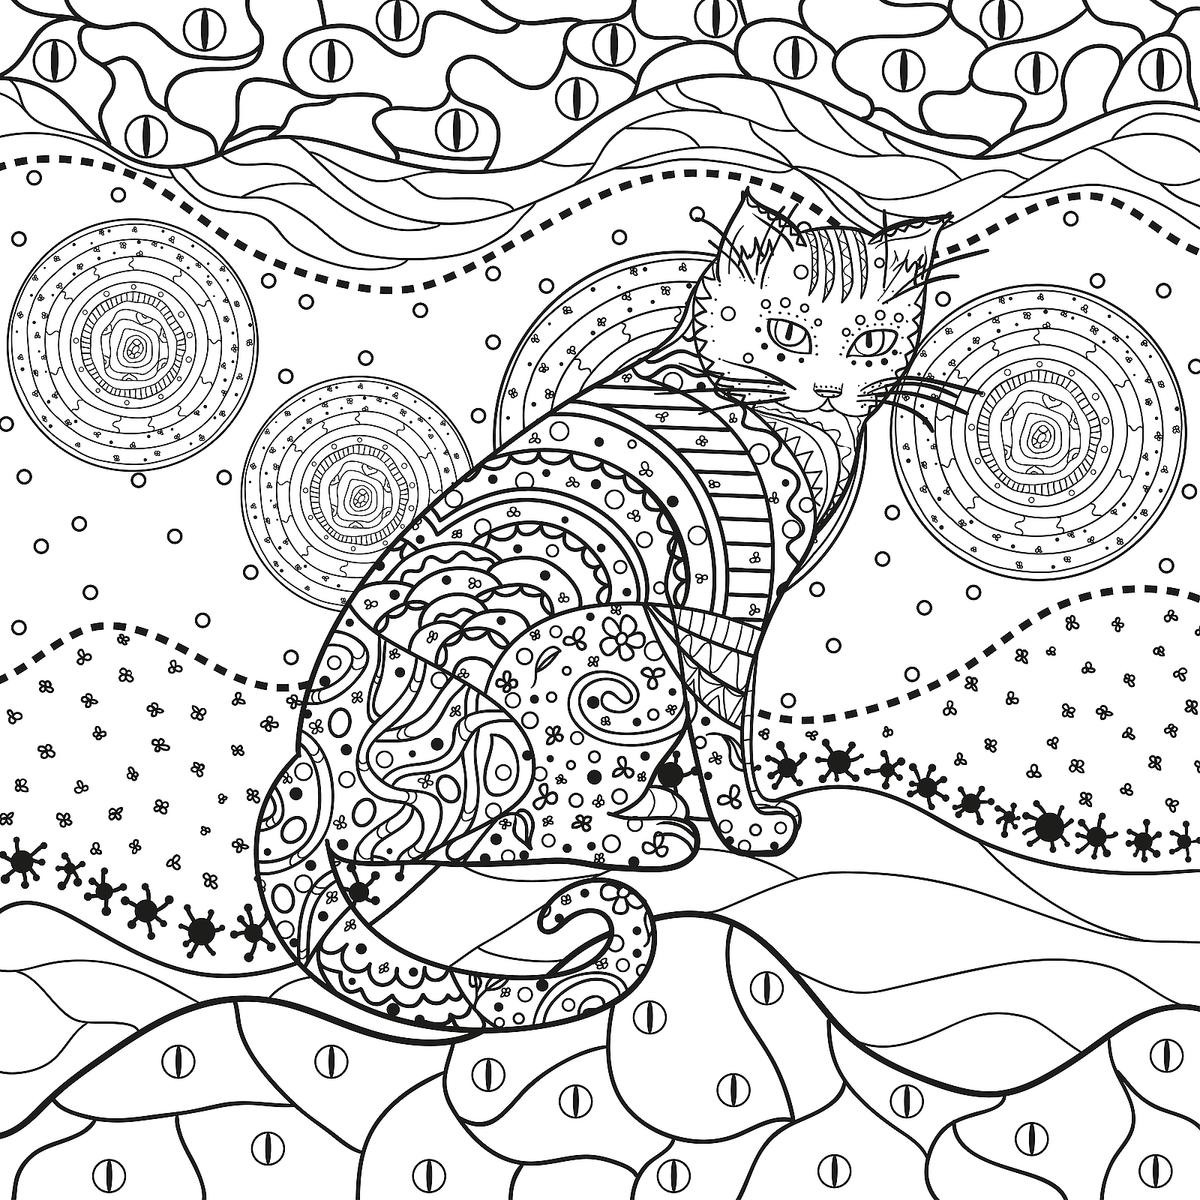 printable cat coloring pages cats coloring pages download and print cats coloring pages coloring pages printable cat